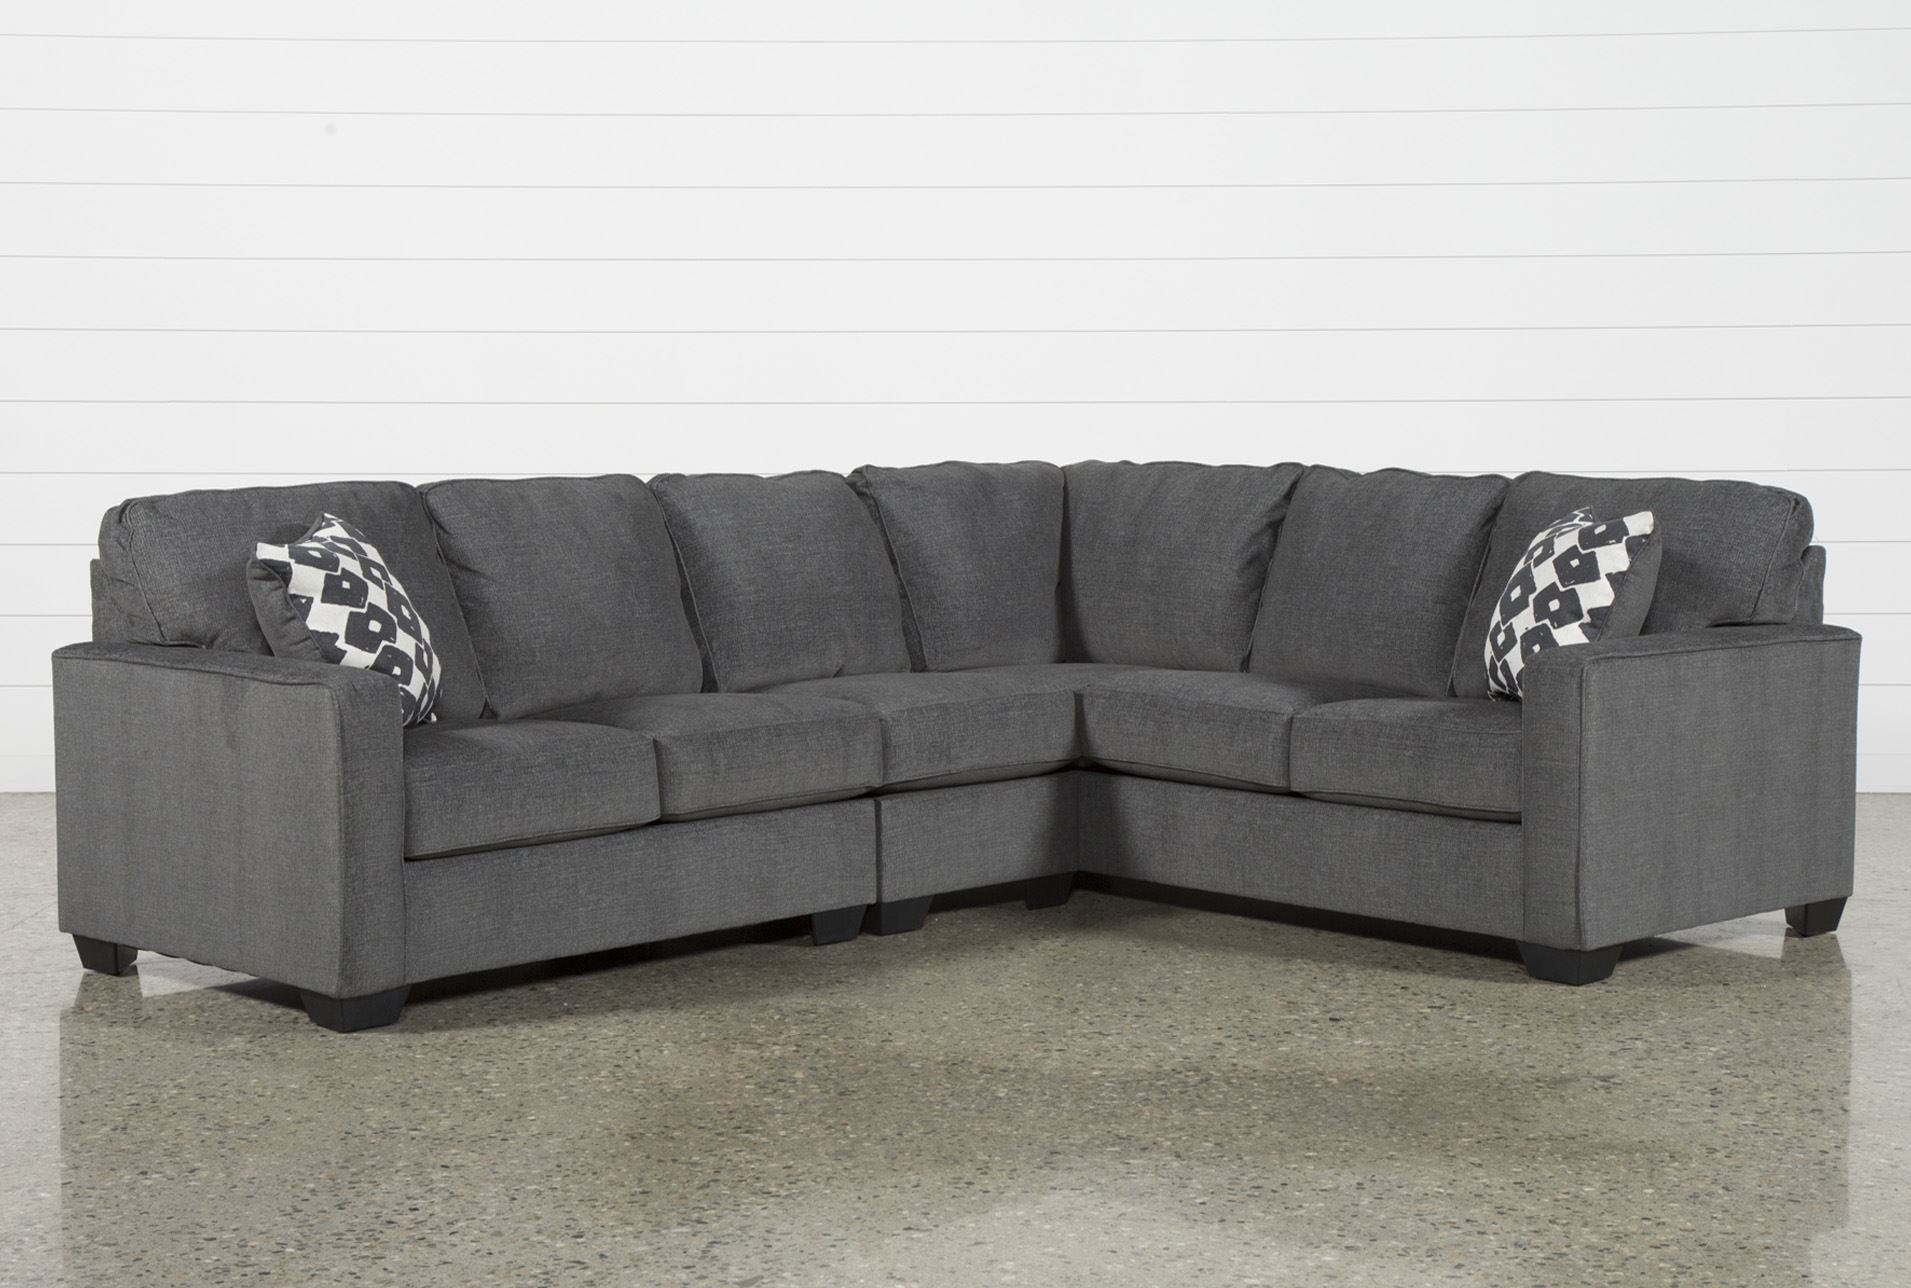 Turdur 3 Piece Sectional W/laf Loveseat In 2018 | Products Throughout Mcdade Graphite Sofa Chairs (Image 19 of 20)